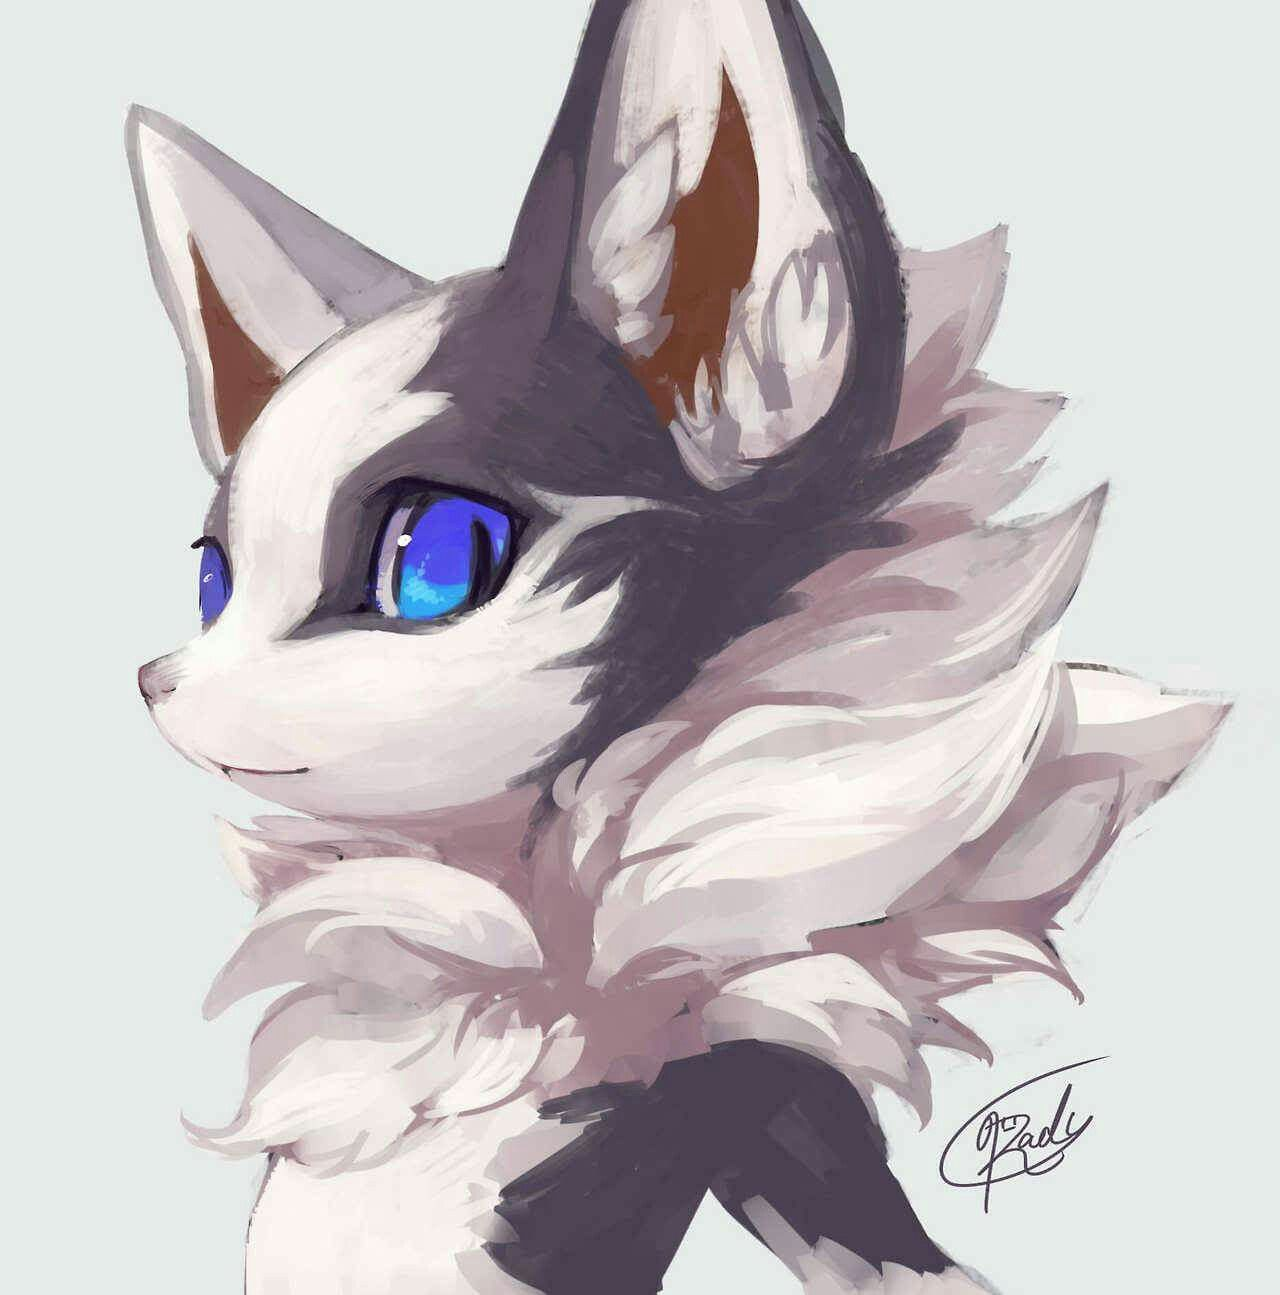 By Http Rady Wolf Tumblr Com Cute Fantasy Creatures Furry Drawing Anime Furry